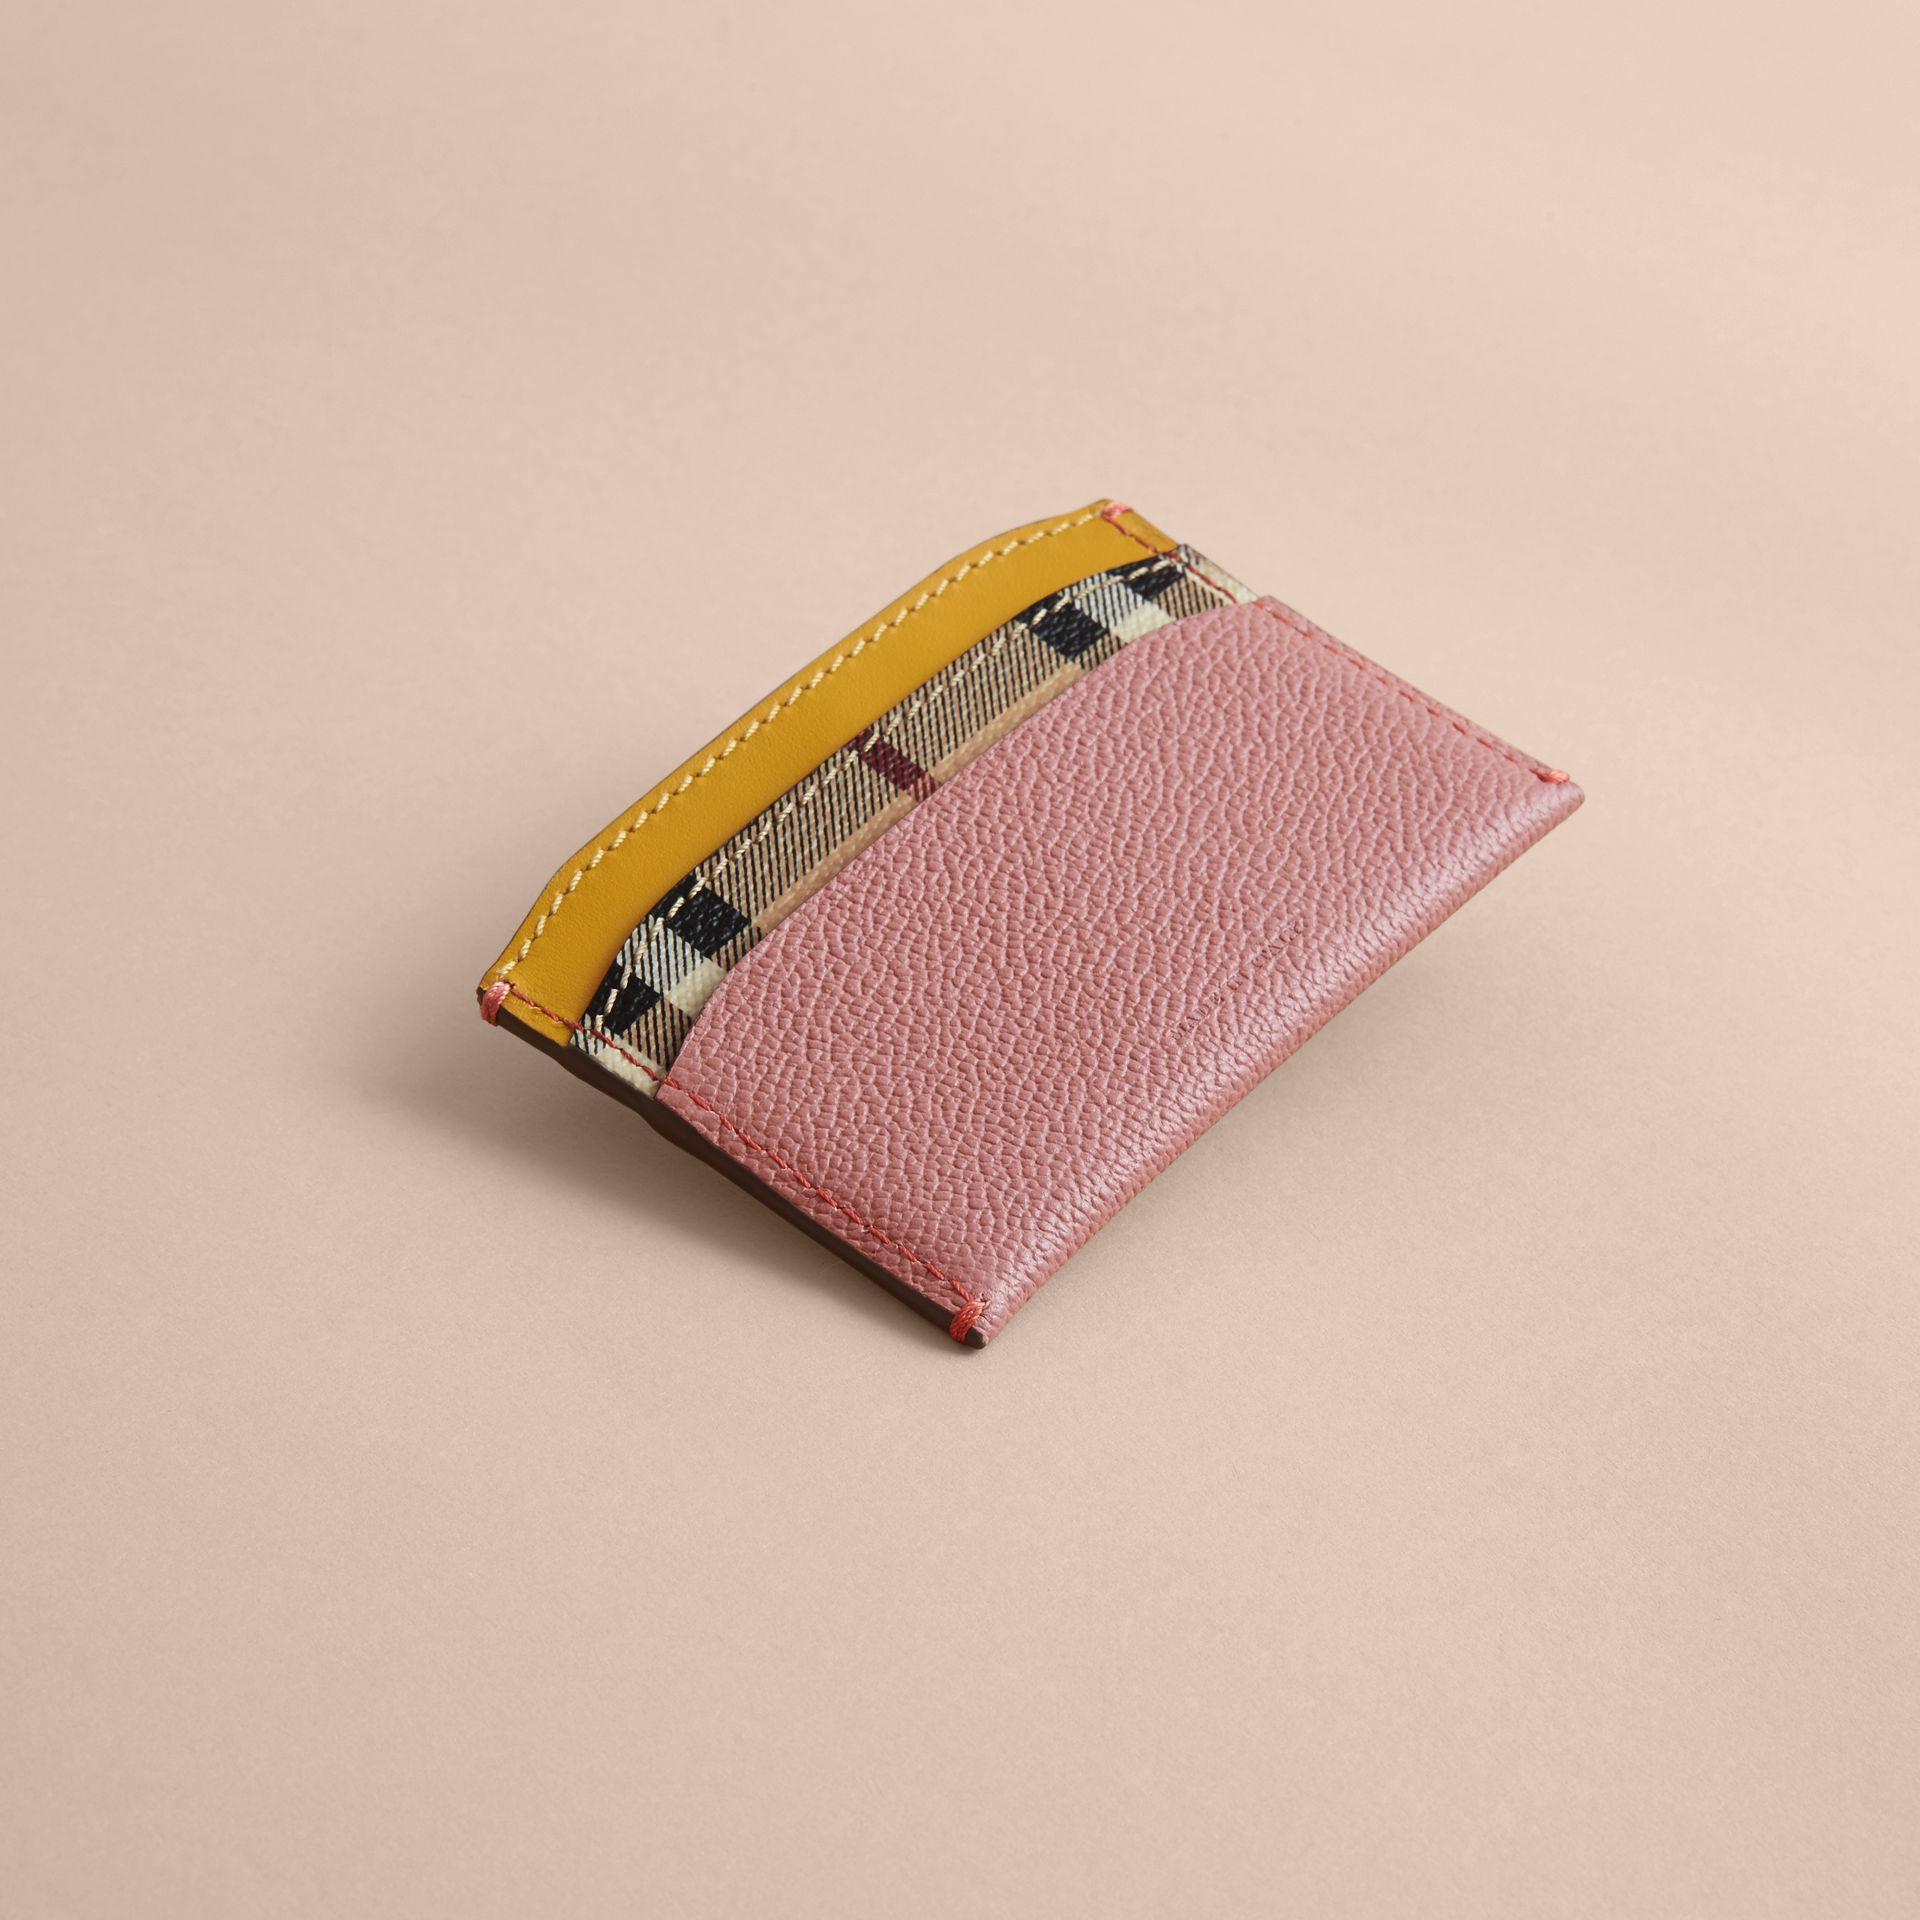 Colour Block Leather and Haymarket Check Card Case in Dusty Pink / Multi - Women | Burberry - gallery image 3